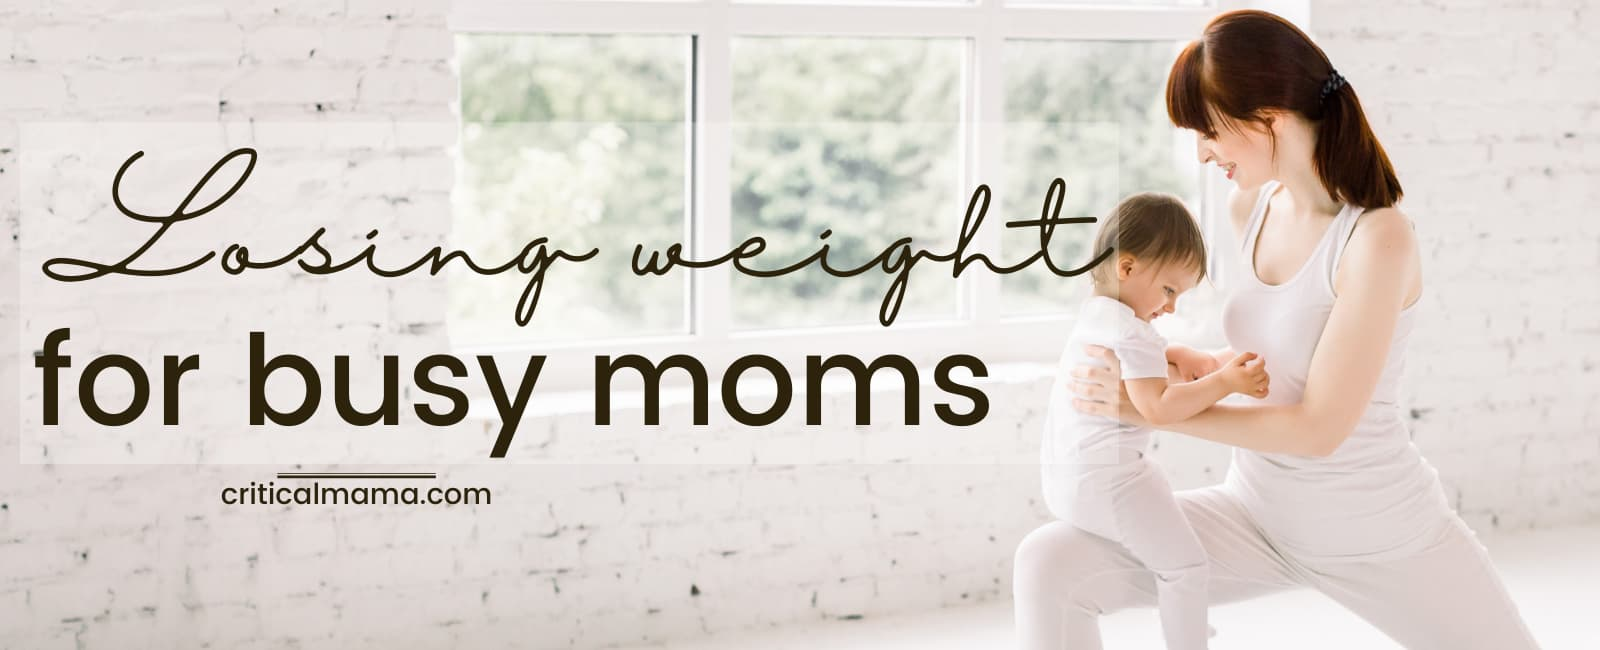 How To Lose Weight For Busy Moms